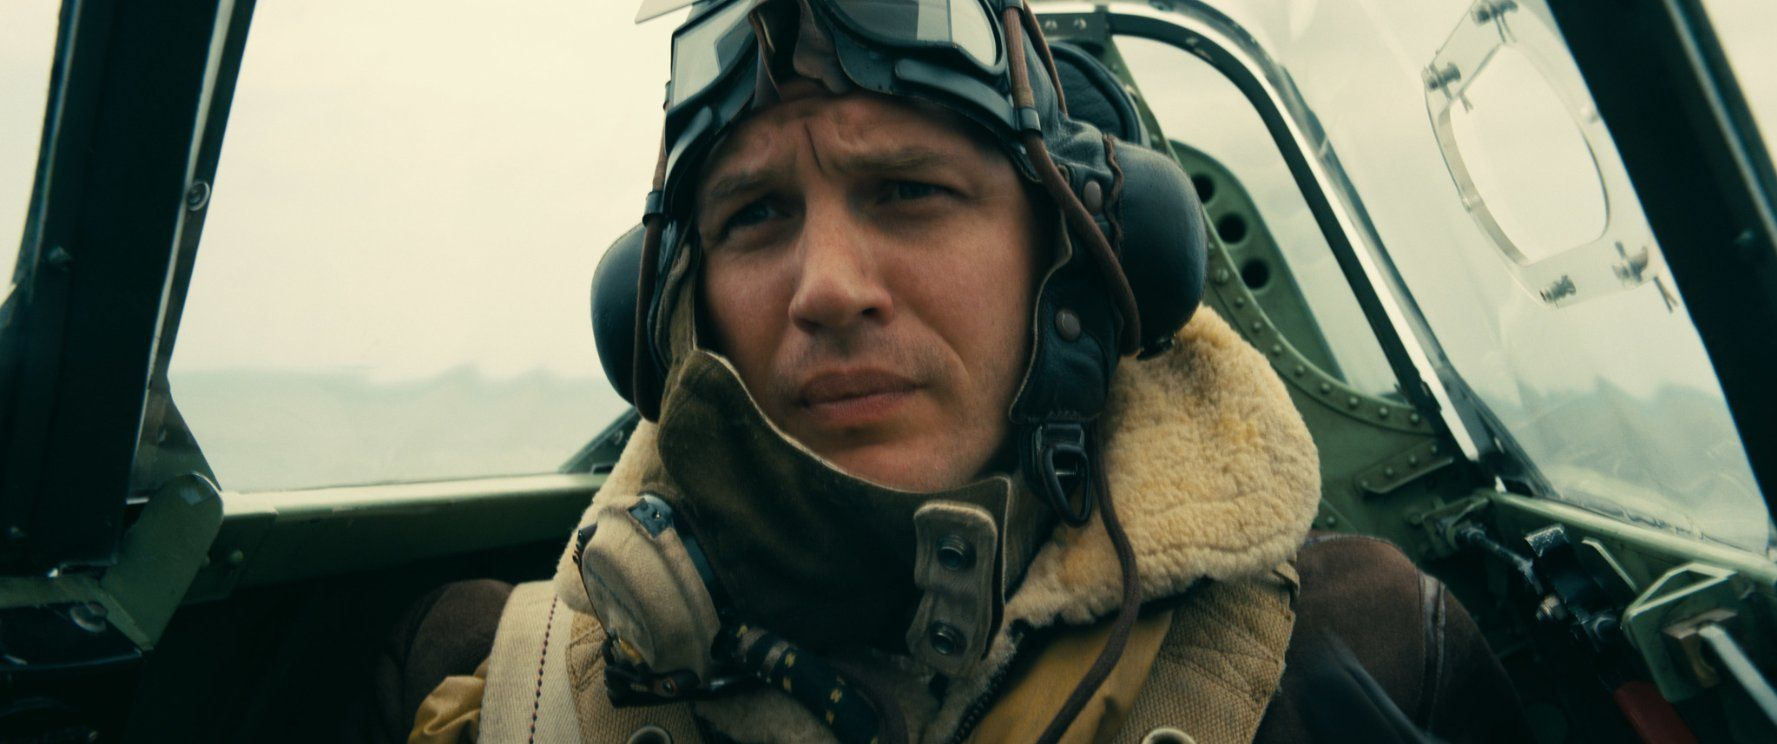 Hans Zimmer On Why Dunkirk Is The Toughest Film He's Ever Composed